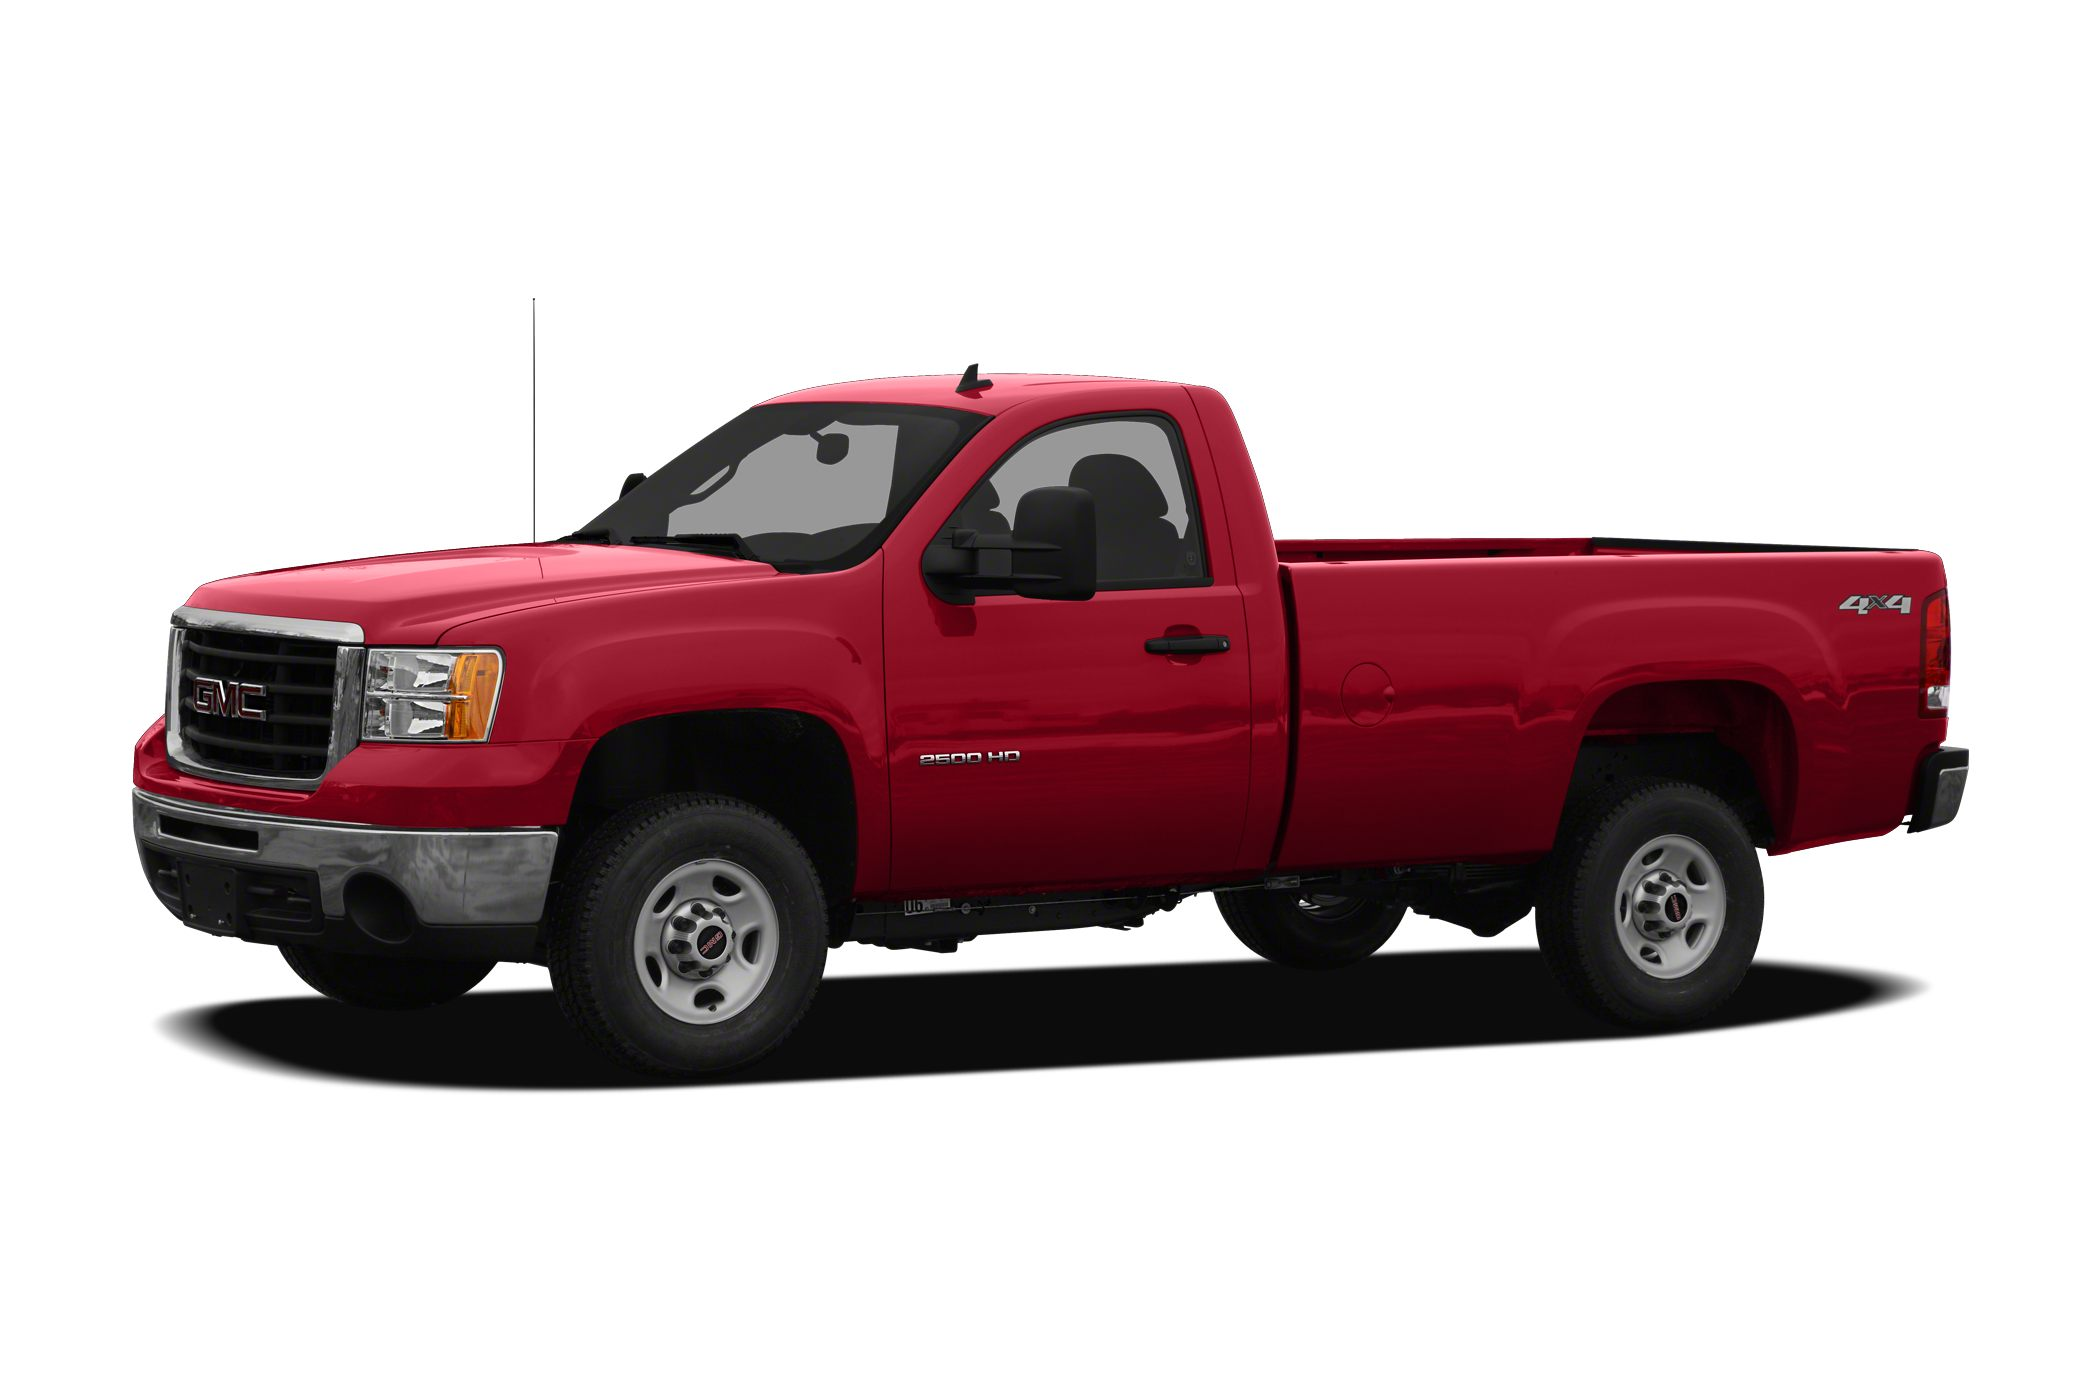 2010 Gmc Sierra 2500hd Work Truck 4x4 Regular Cab 8 Ft Box 133 In Wb Specs And Prices